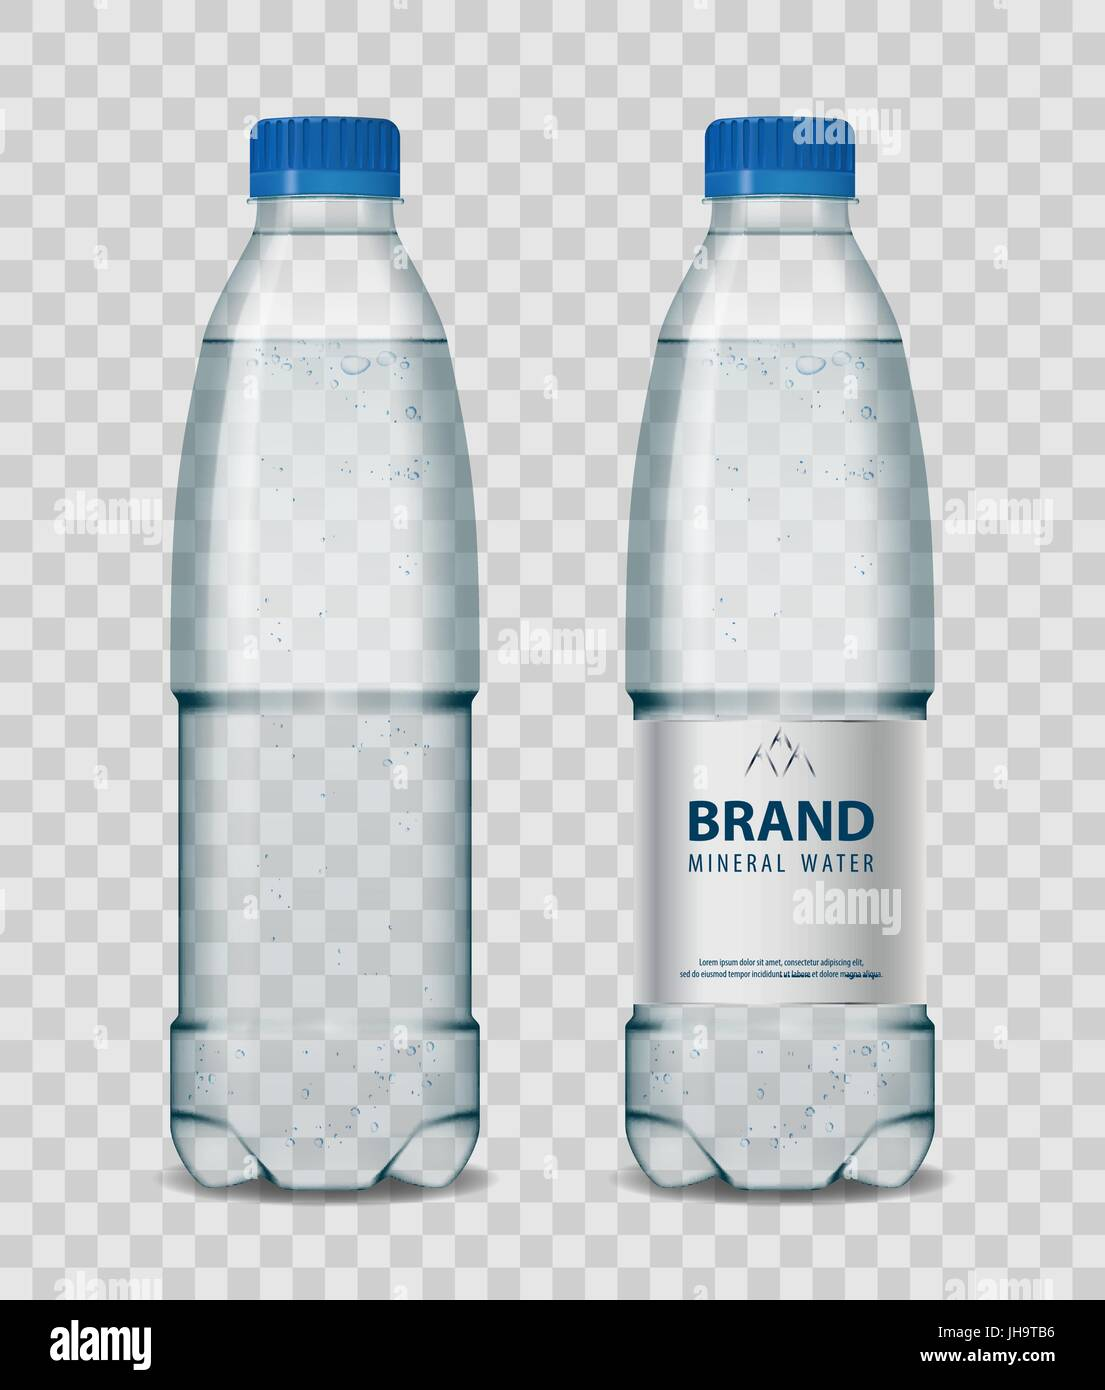 Plastic bottle with mineral water with blue cap on transparent background. Realistic bottle mockup vector illustration. - Stock Vector